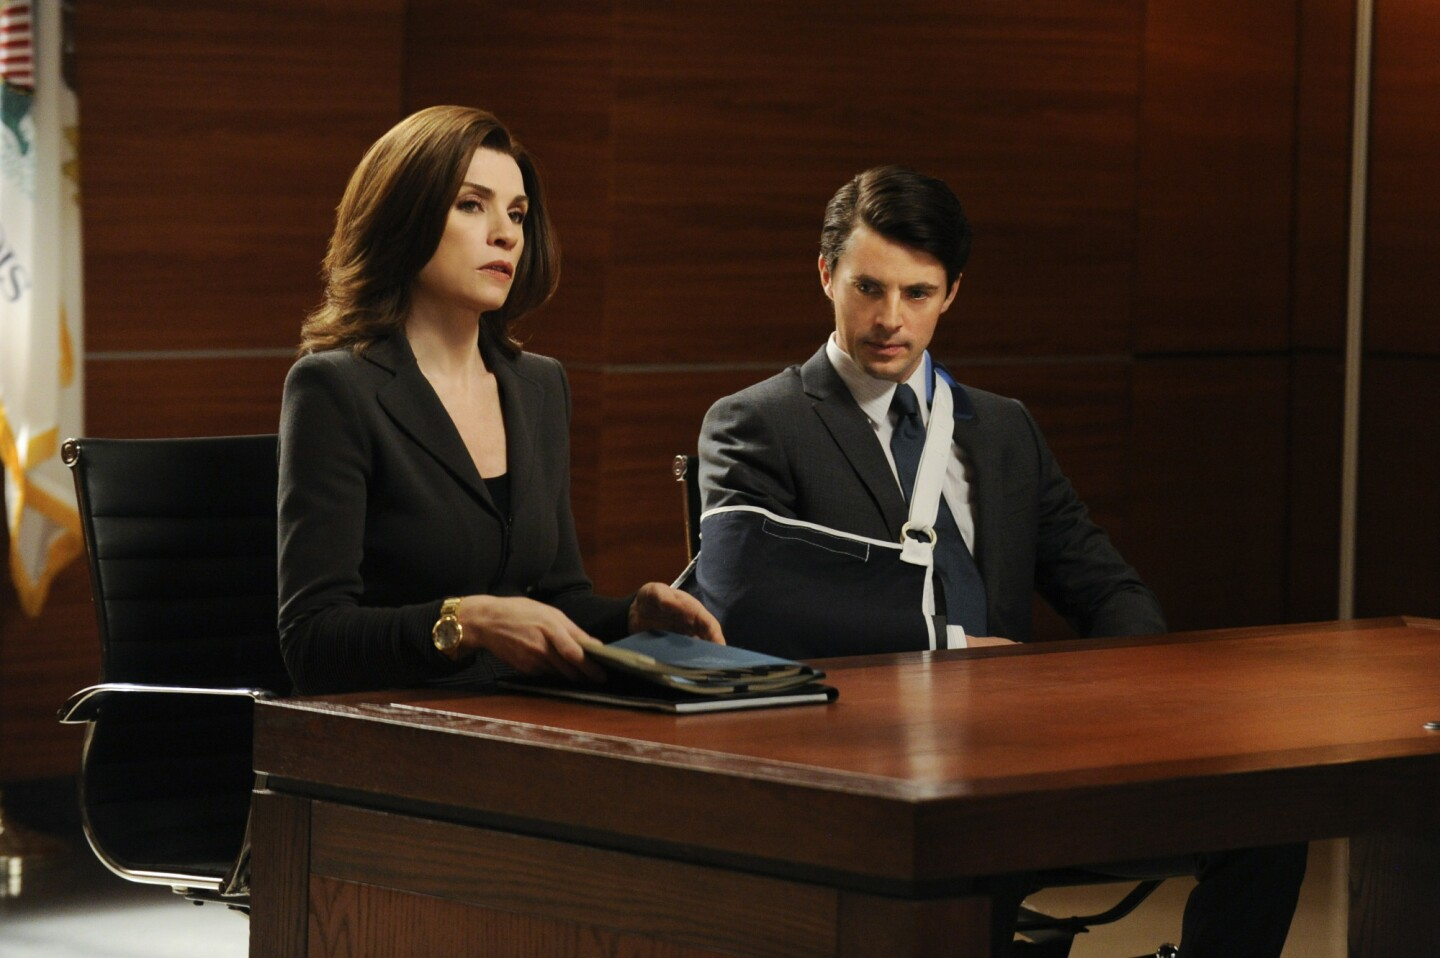 """If Twitter is any indication, the most egregious oversight was for """"The Good Wife."""" The CBS legal show was thought to have a strong Emmy case, but it failed to score a top drama nomination."""